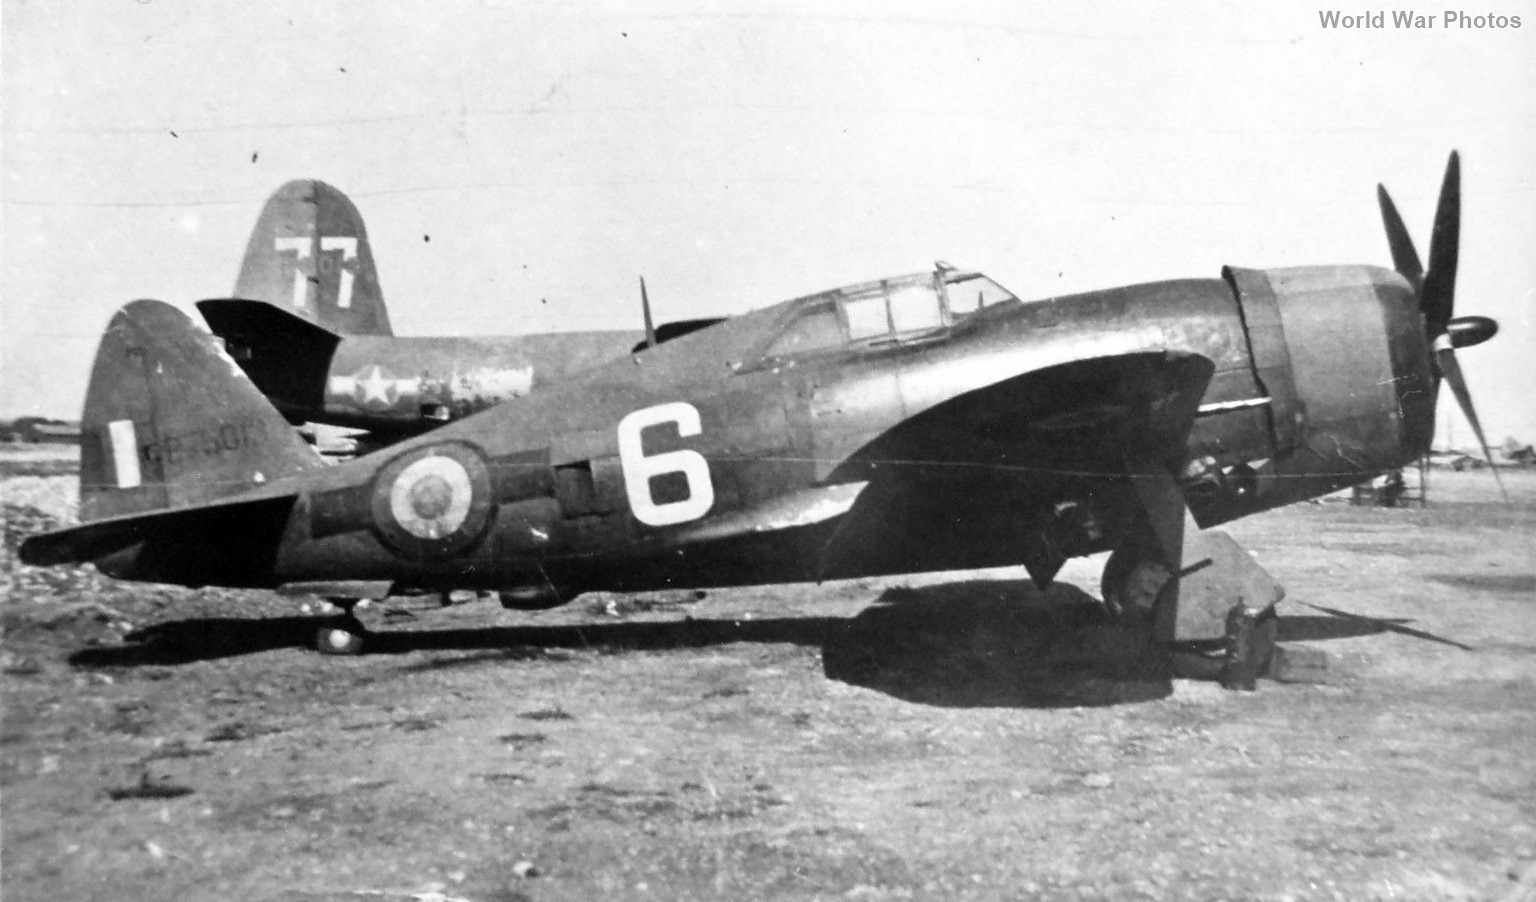 French P-47D 42-75013 B-26